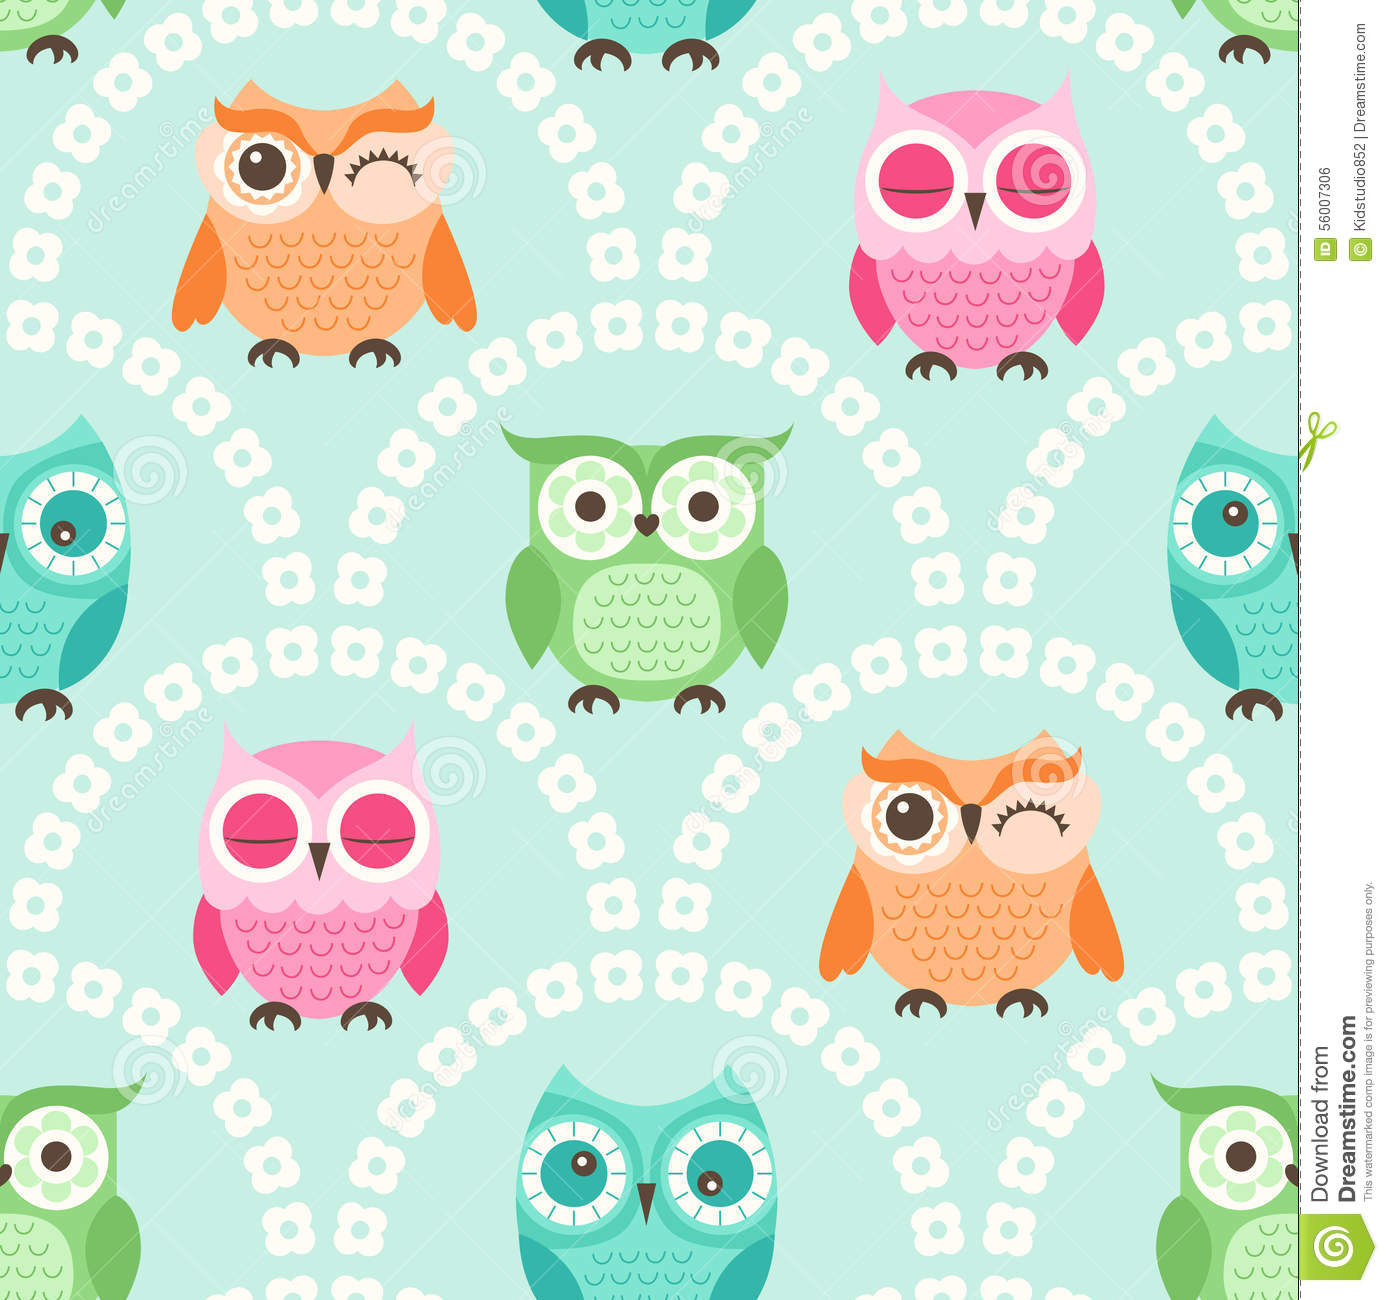 Cute Animal Animation Wallpapers Seamless Cartoon Owls Background Pattern Stock Vector